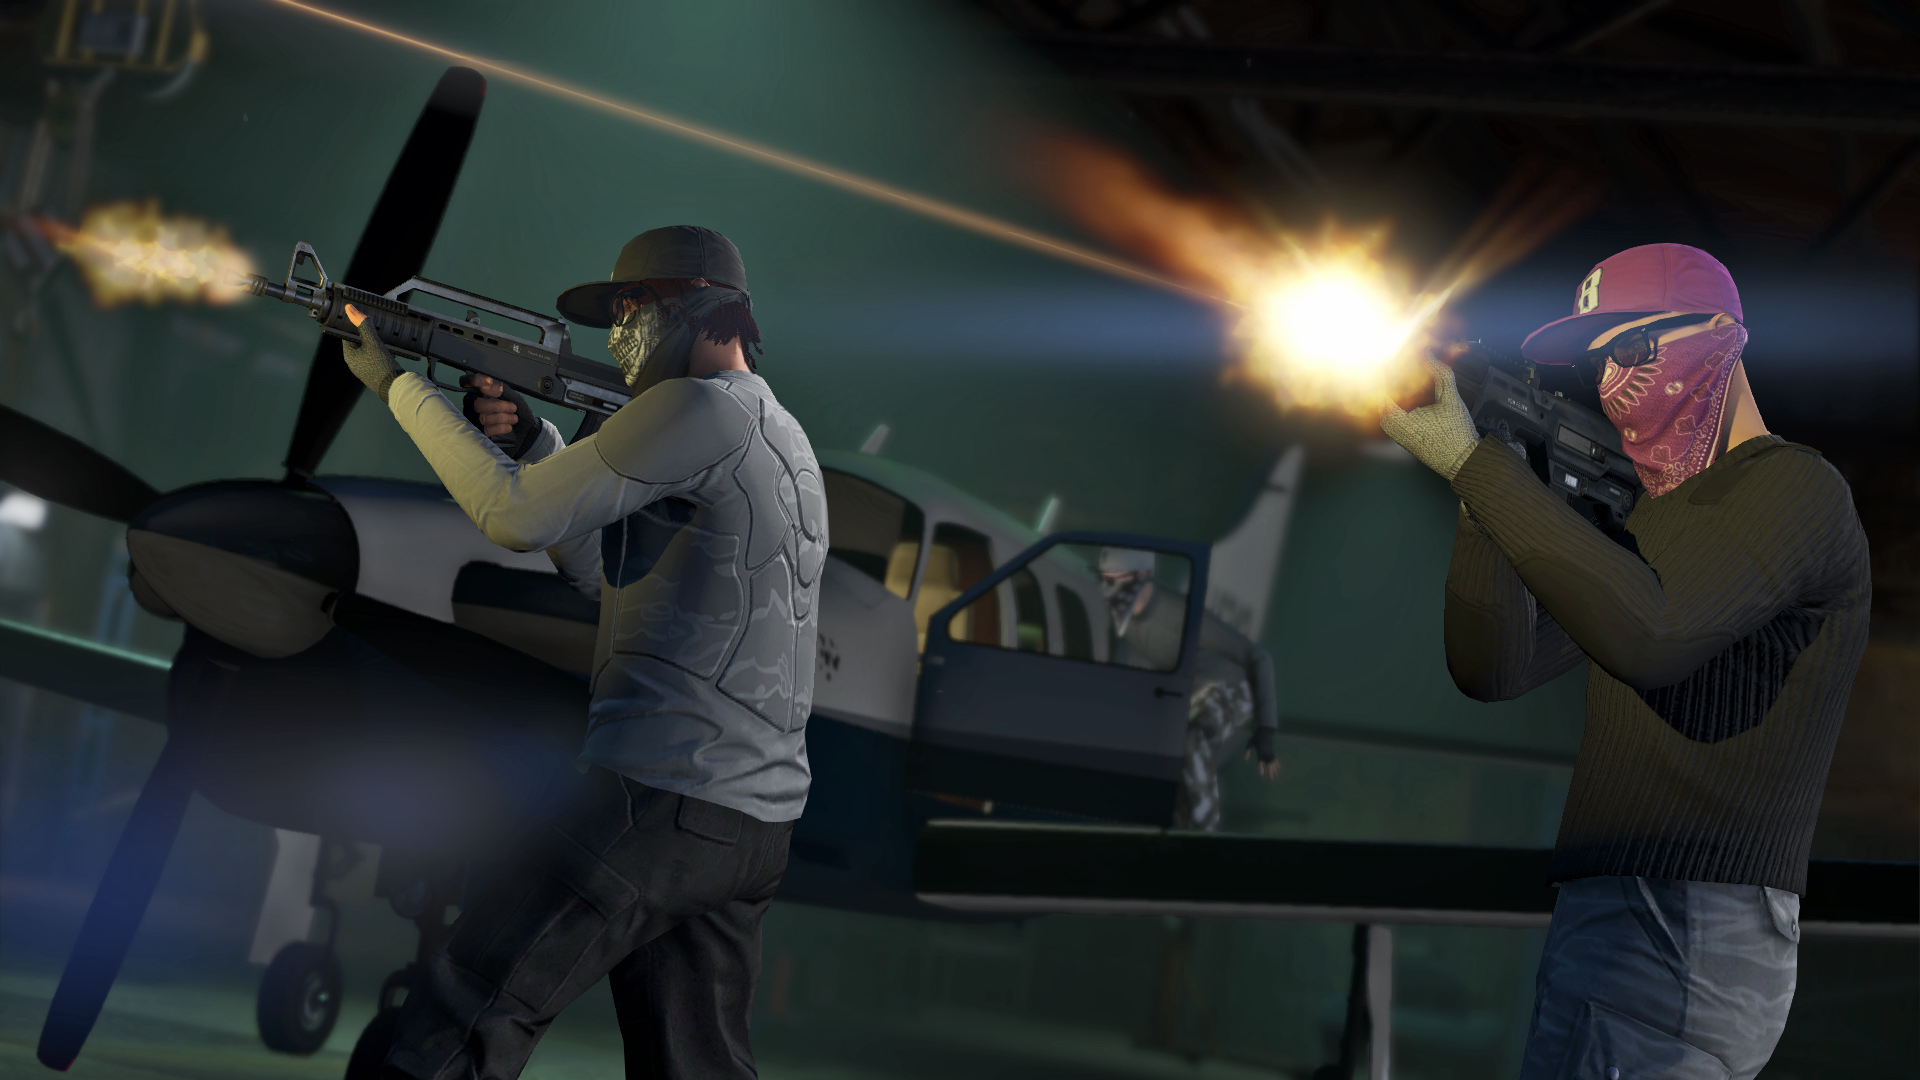 Release date for heists in gta online in Melbourne